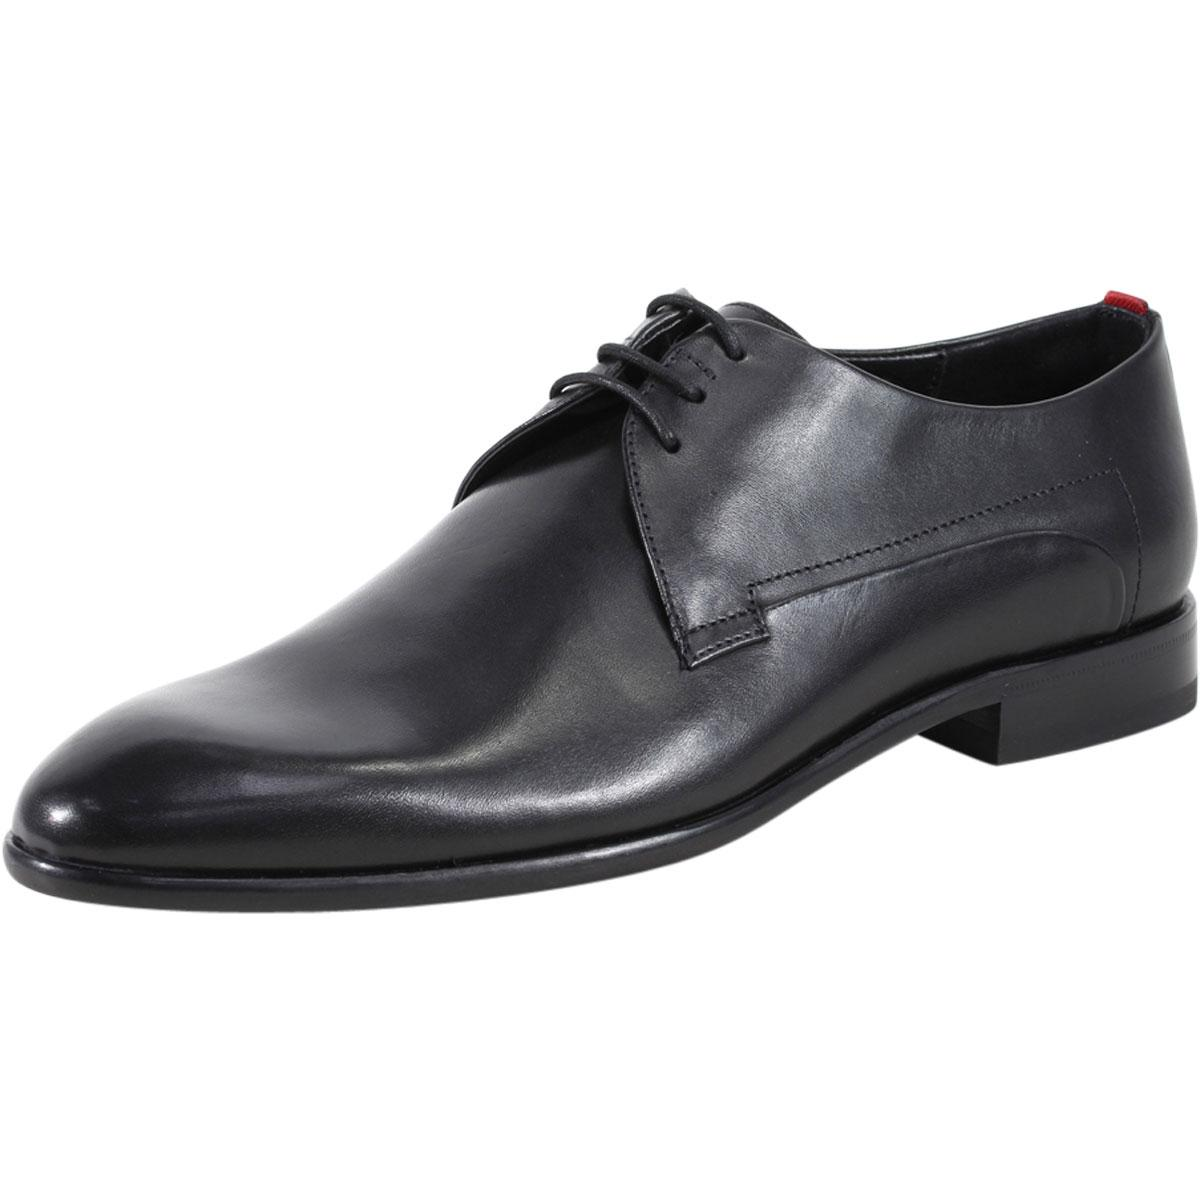 4a2010fa976 Hugo Boss Men s Appeal Leather Derby Oxfords Shoes